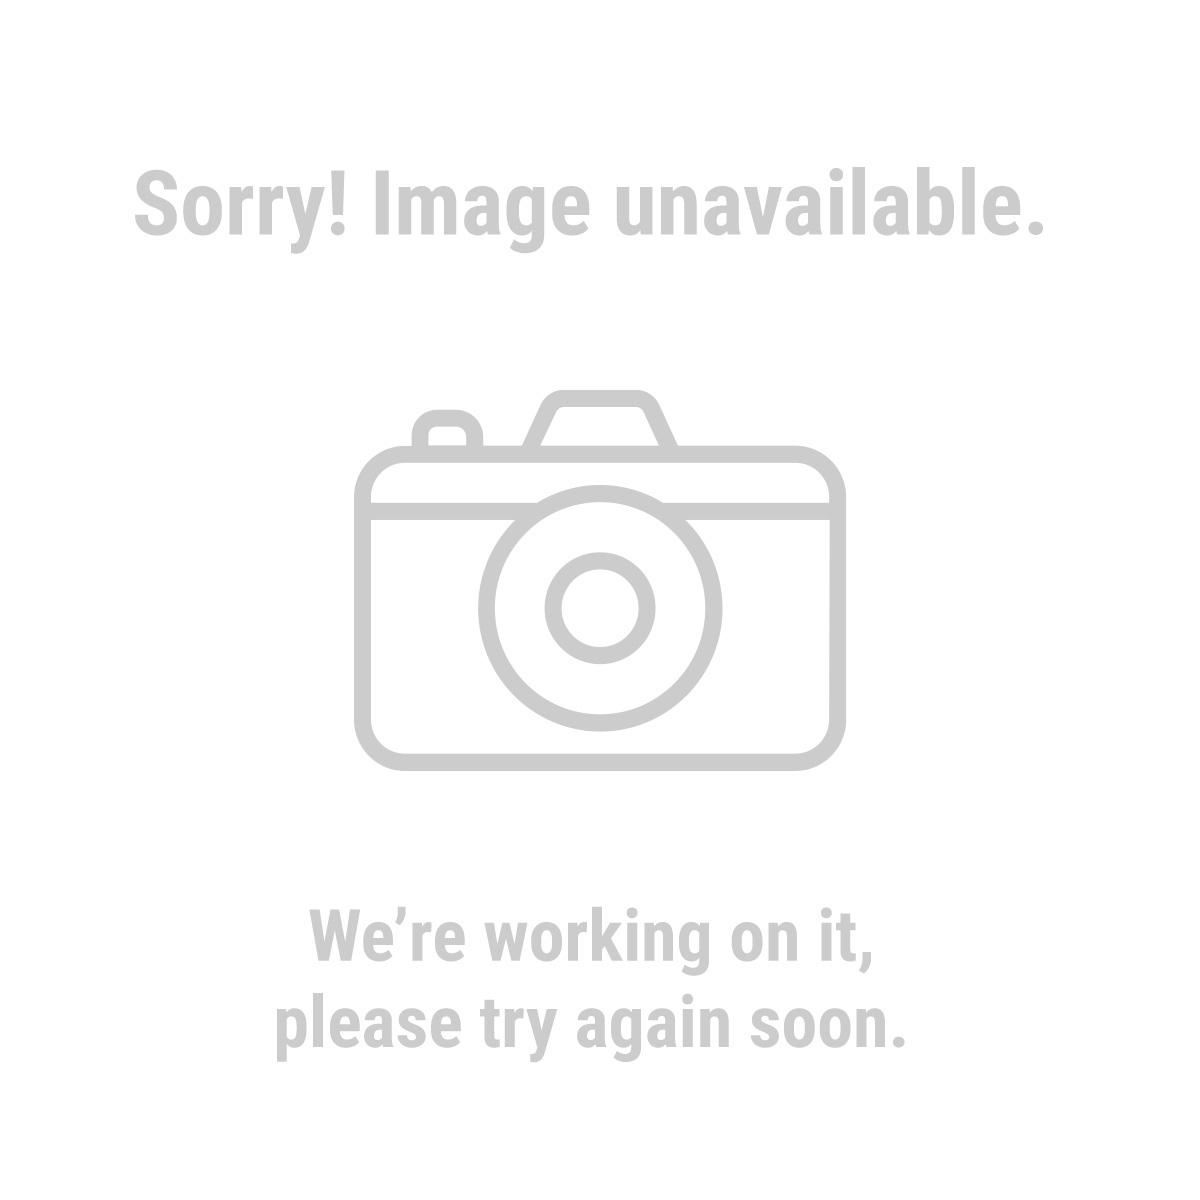 Western Safety 68391 Heavy Duty PVC Dipped Gloves